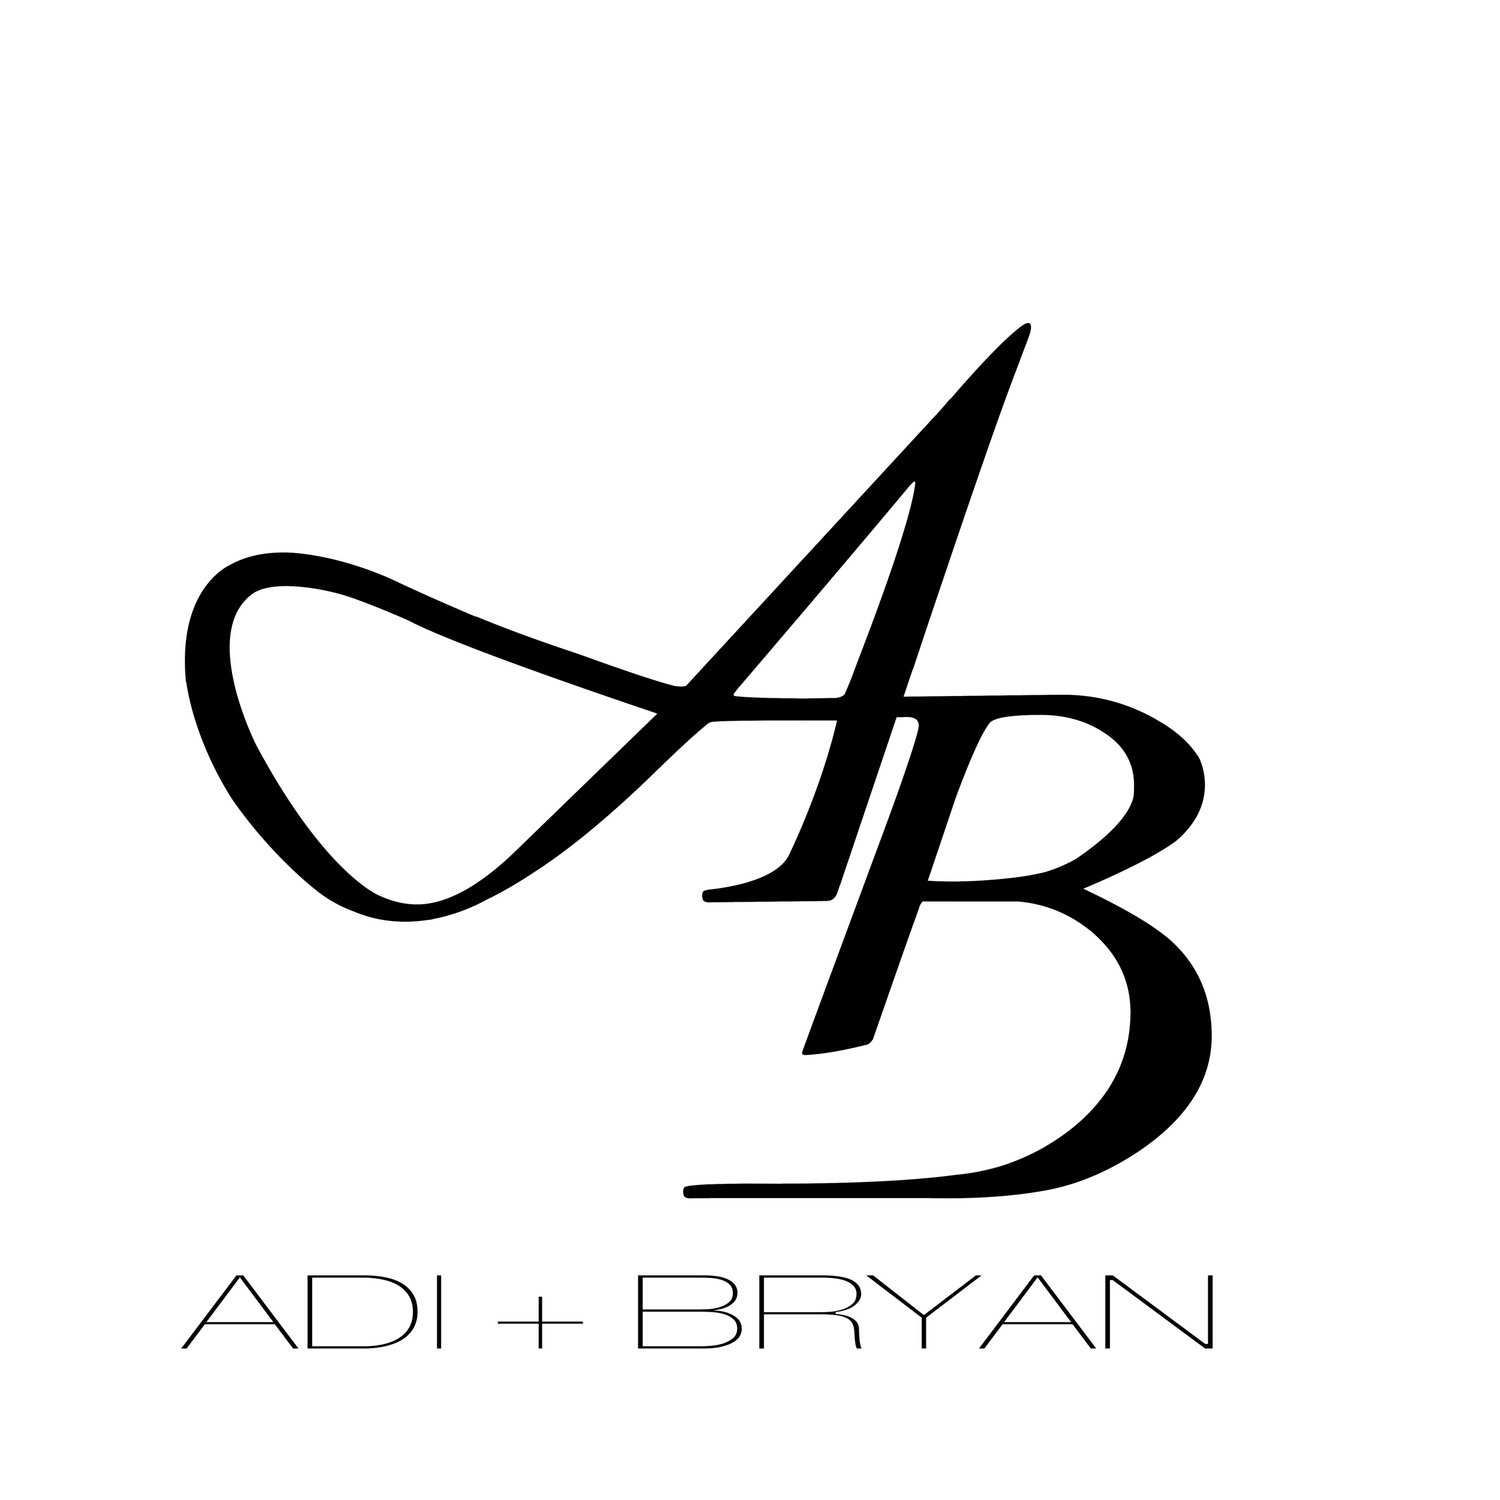 Adi & Bryan Photography